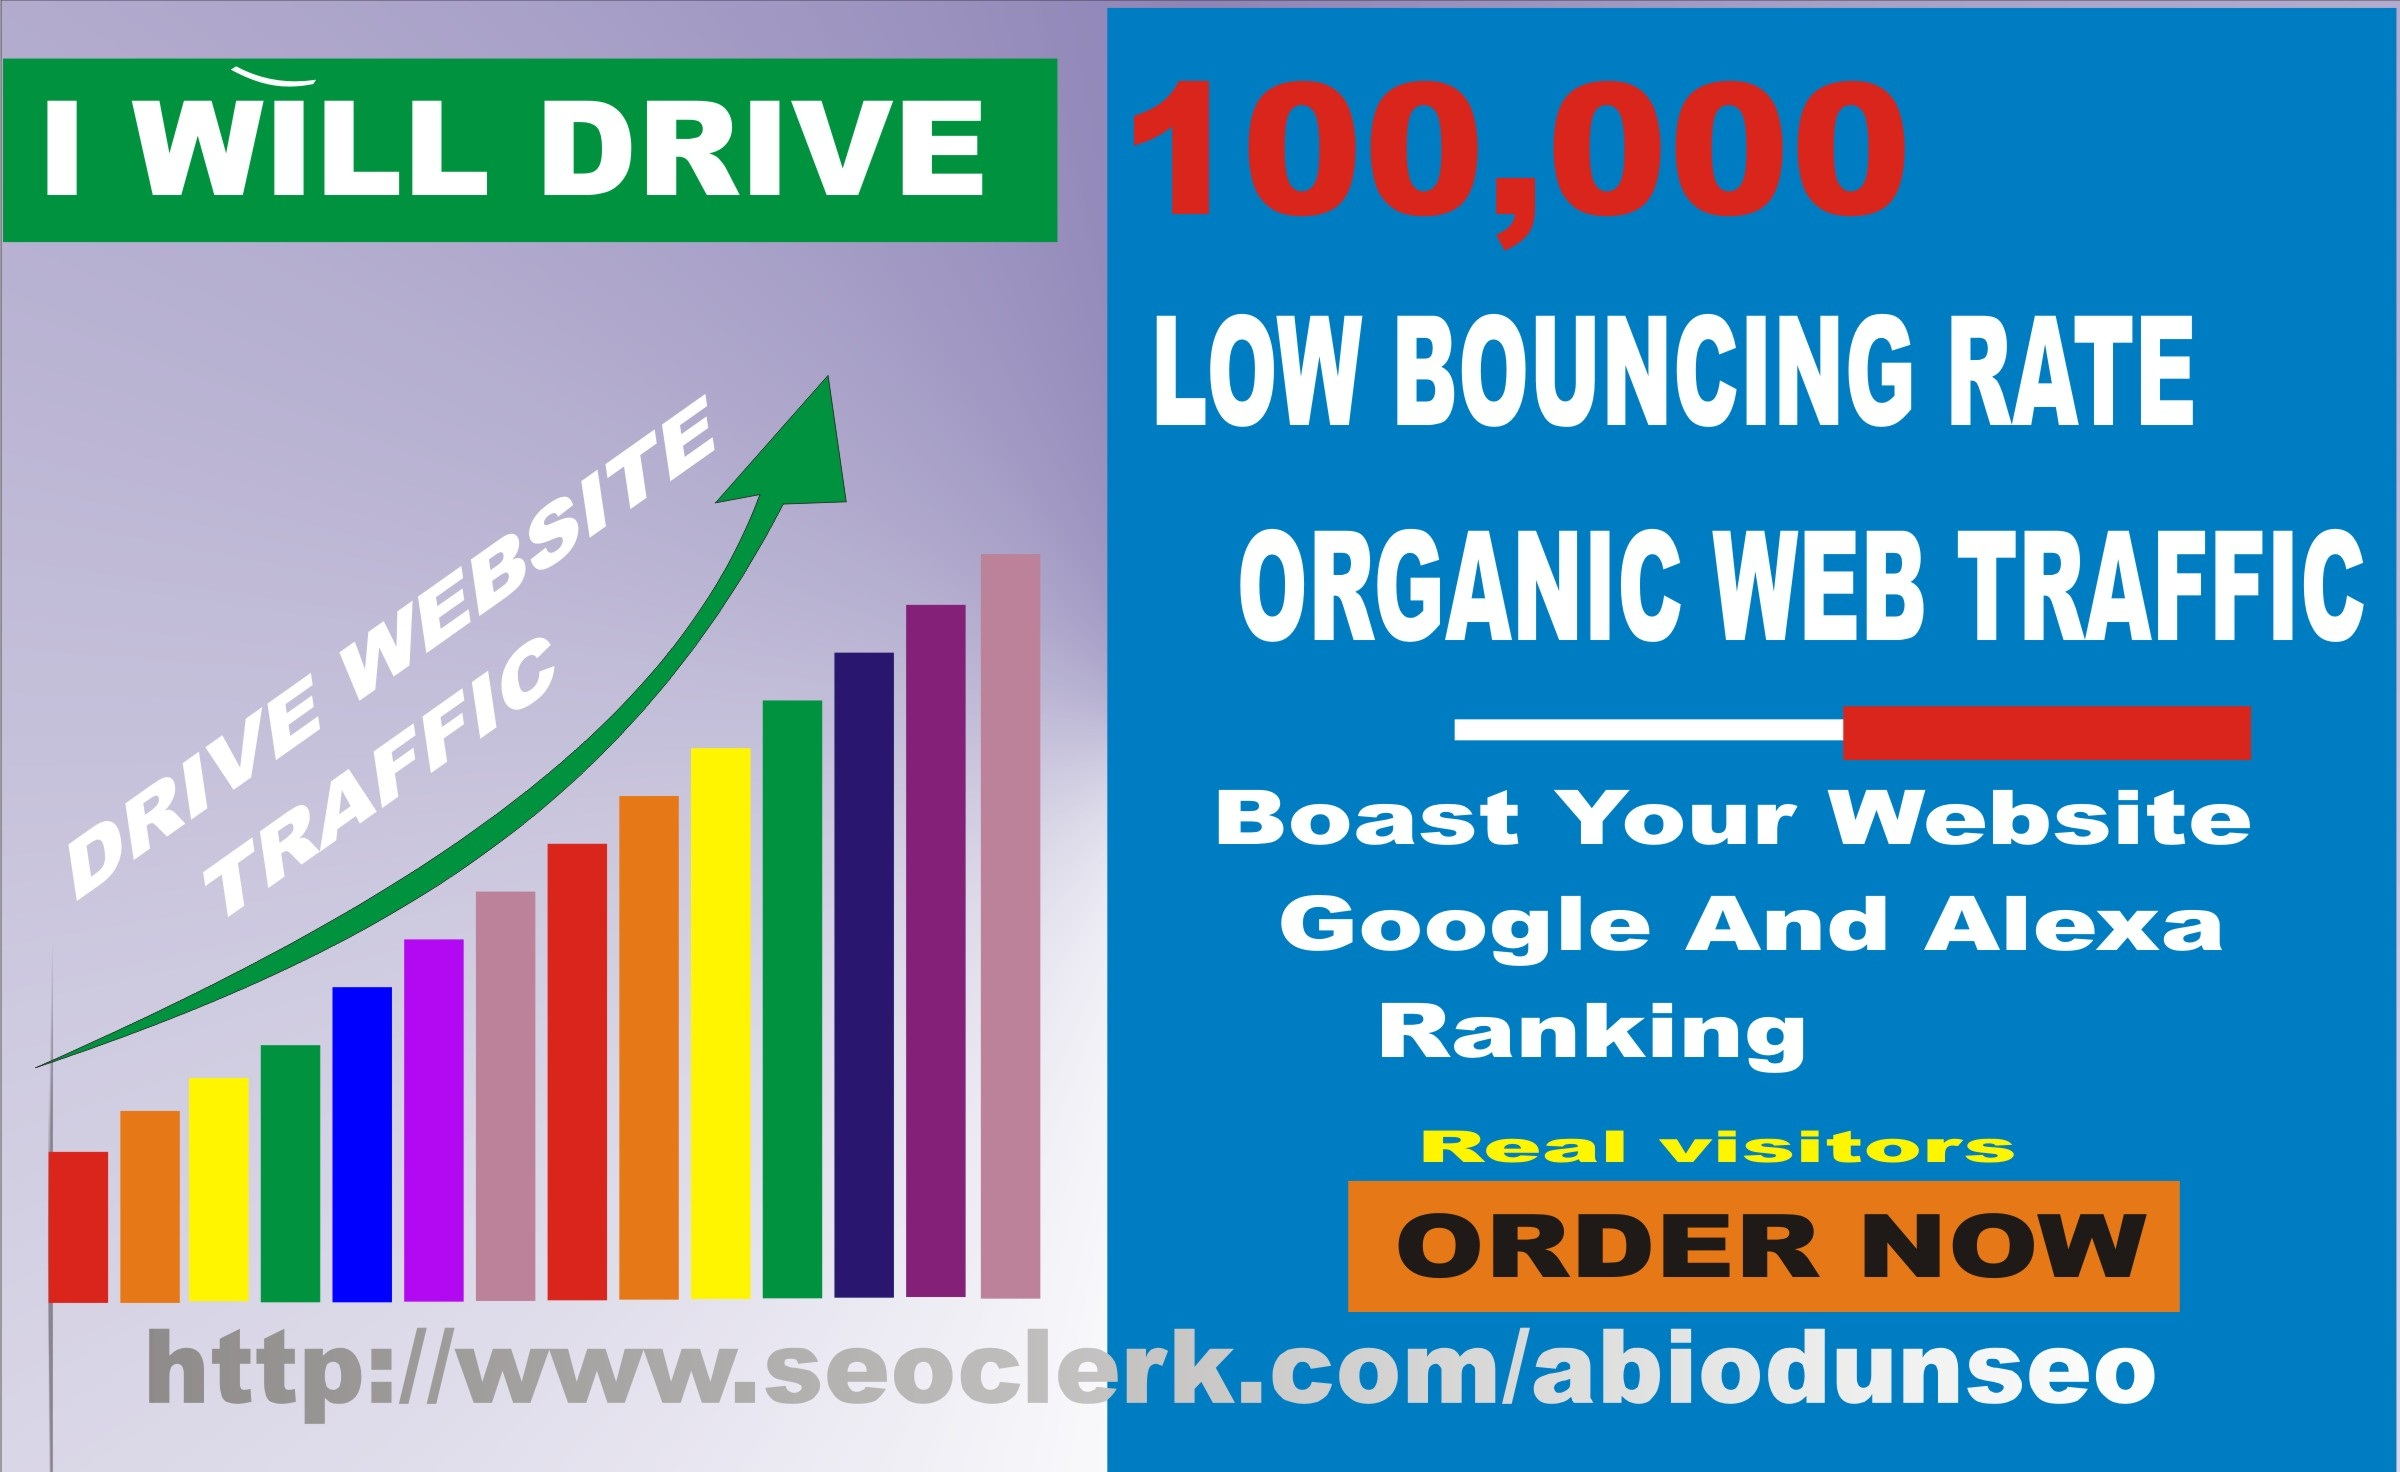 Get 100,000 organic traffic to your website/blog